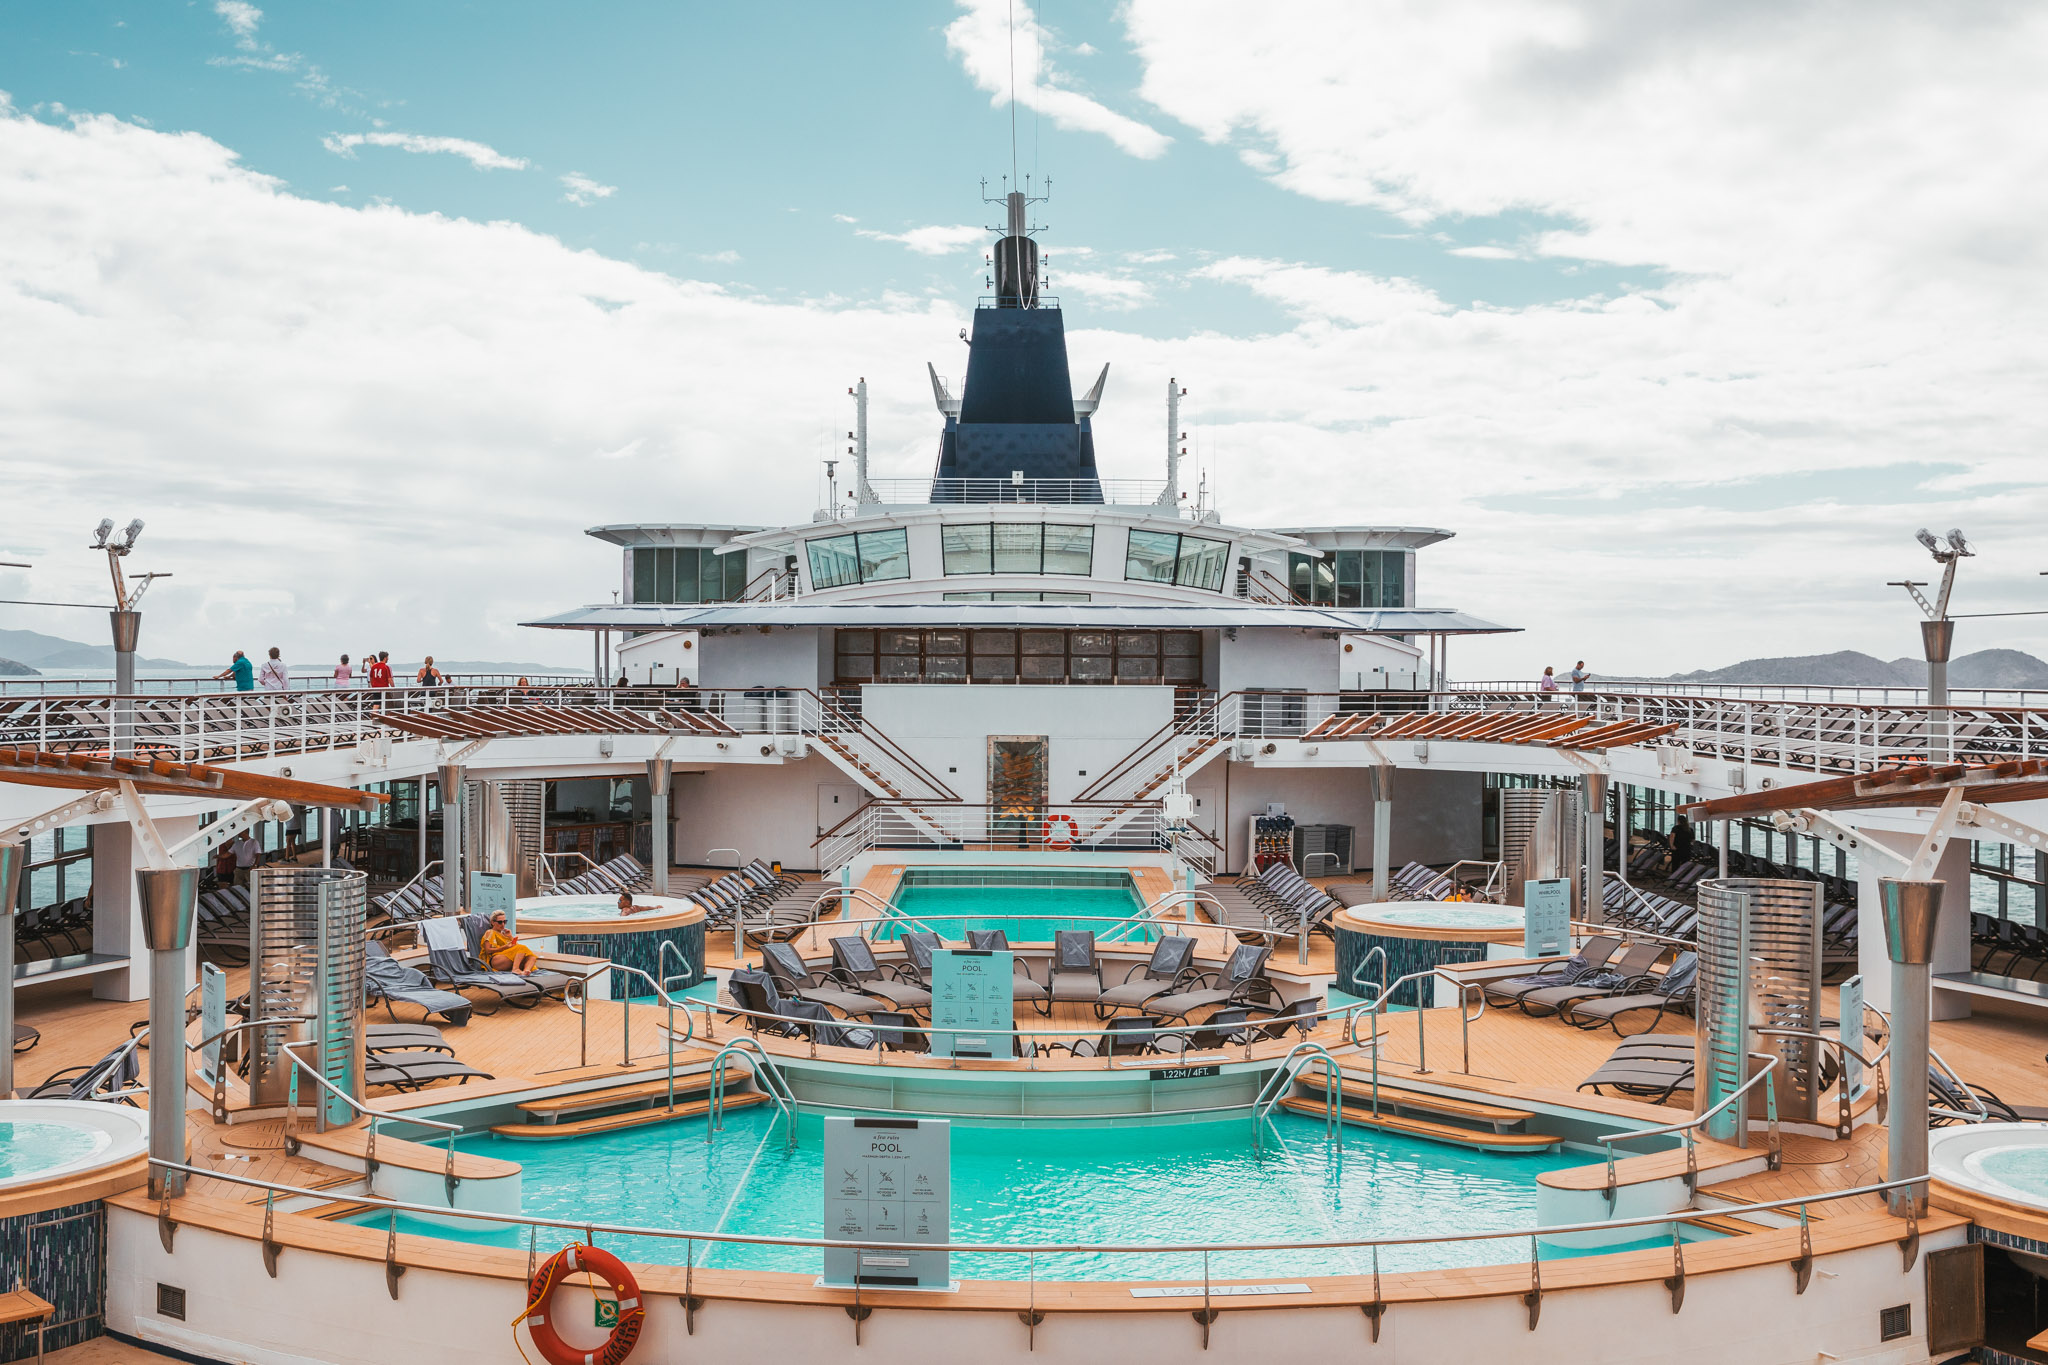 Main pools on deck 10 // Cruise Review: Everything You Need To Know About The Celebrity Summit